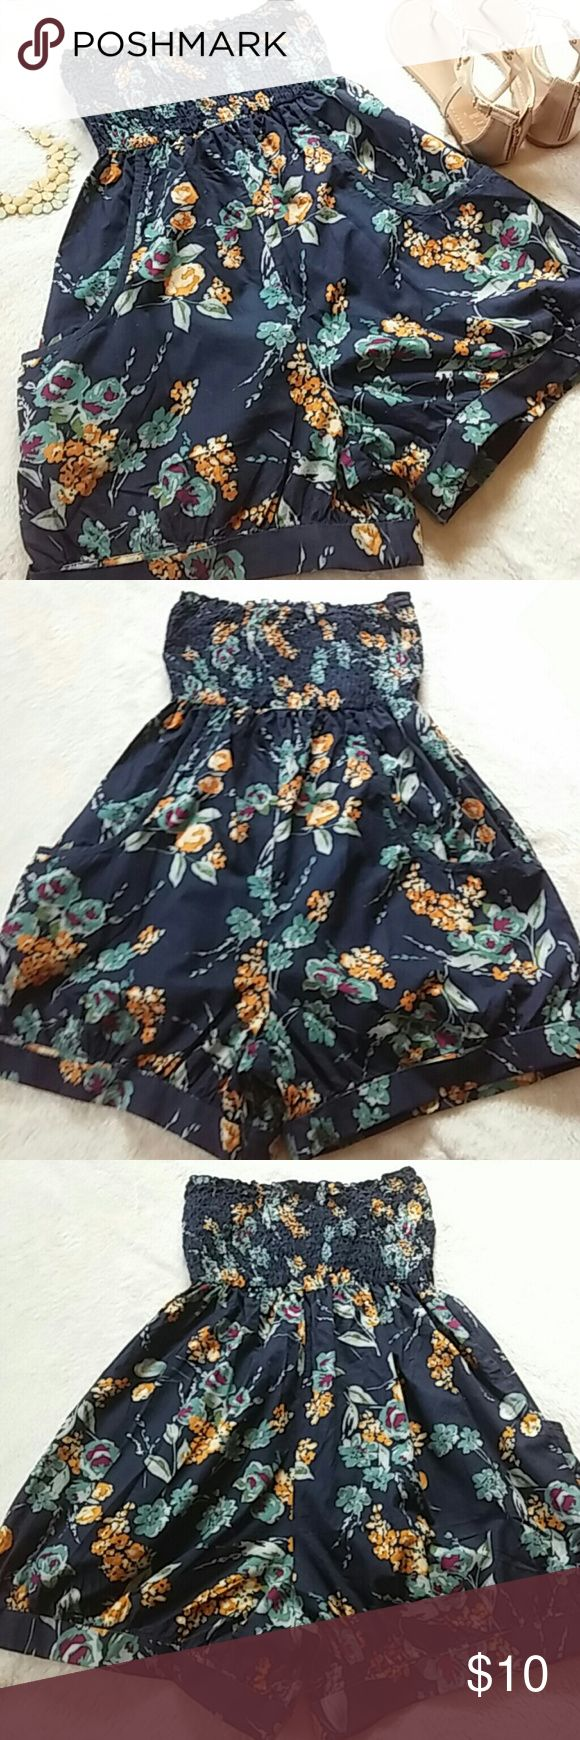 """Strapless Floral Romper Cute navy colored, strapless romper with an all over floral pattern. The floral design is in shades of gold, teal, gray and purple. Smocked tube top. Side pockets. Cuffed legs. 23"""" long. 100% cotton. Excellent condition. Xhilaration Shorts"""